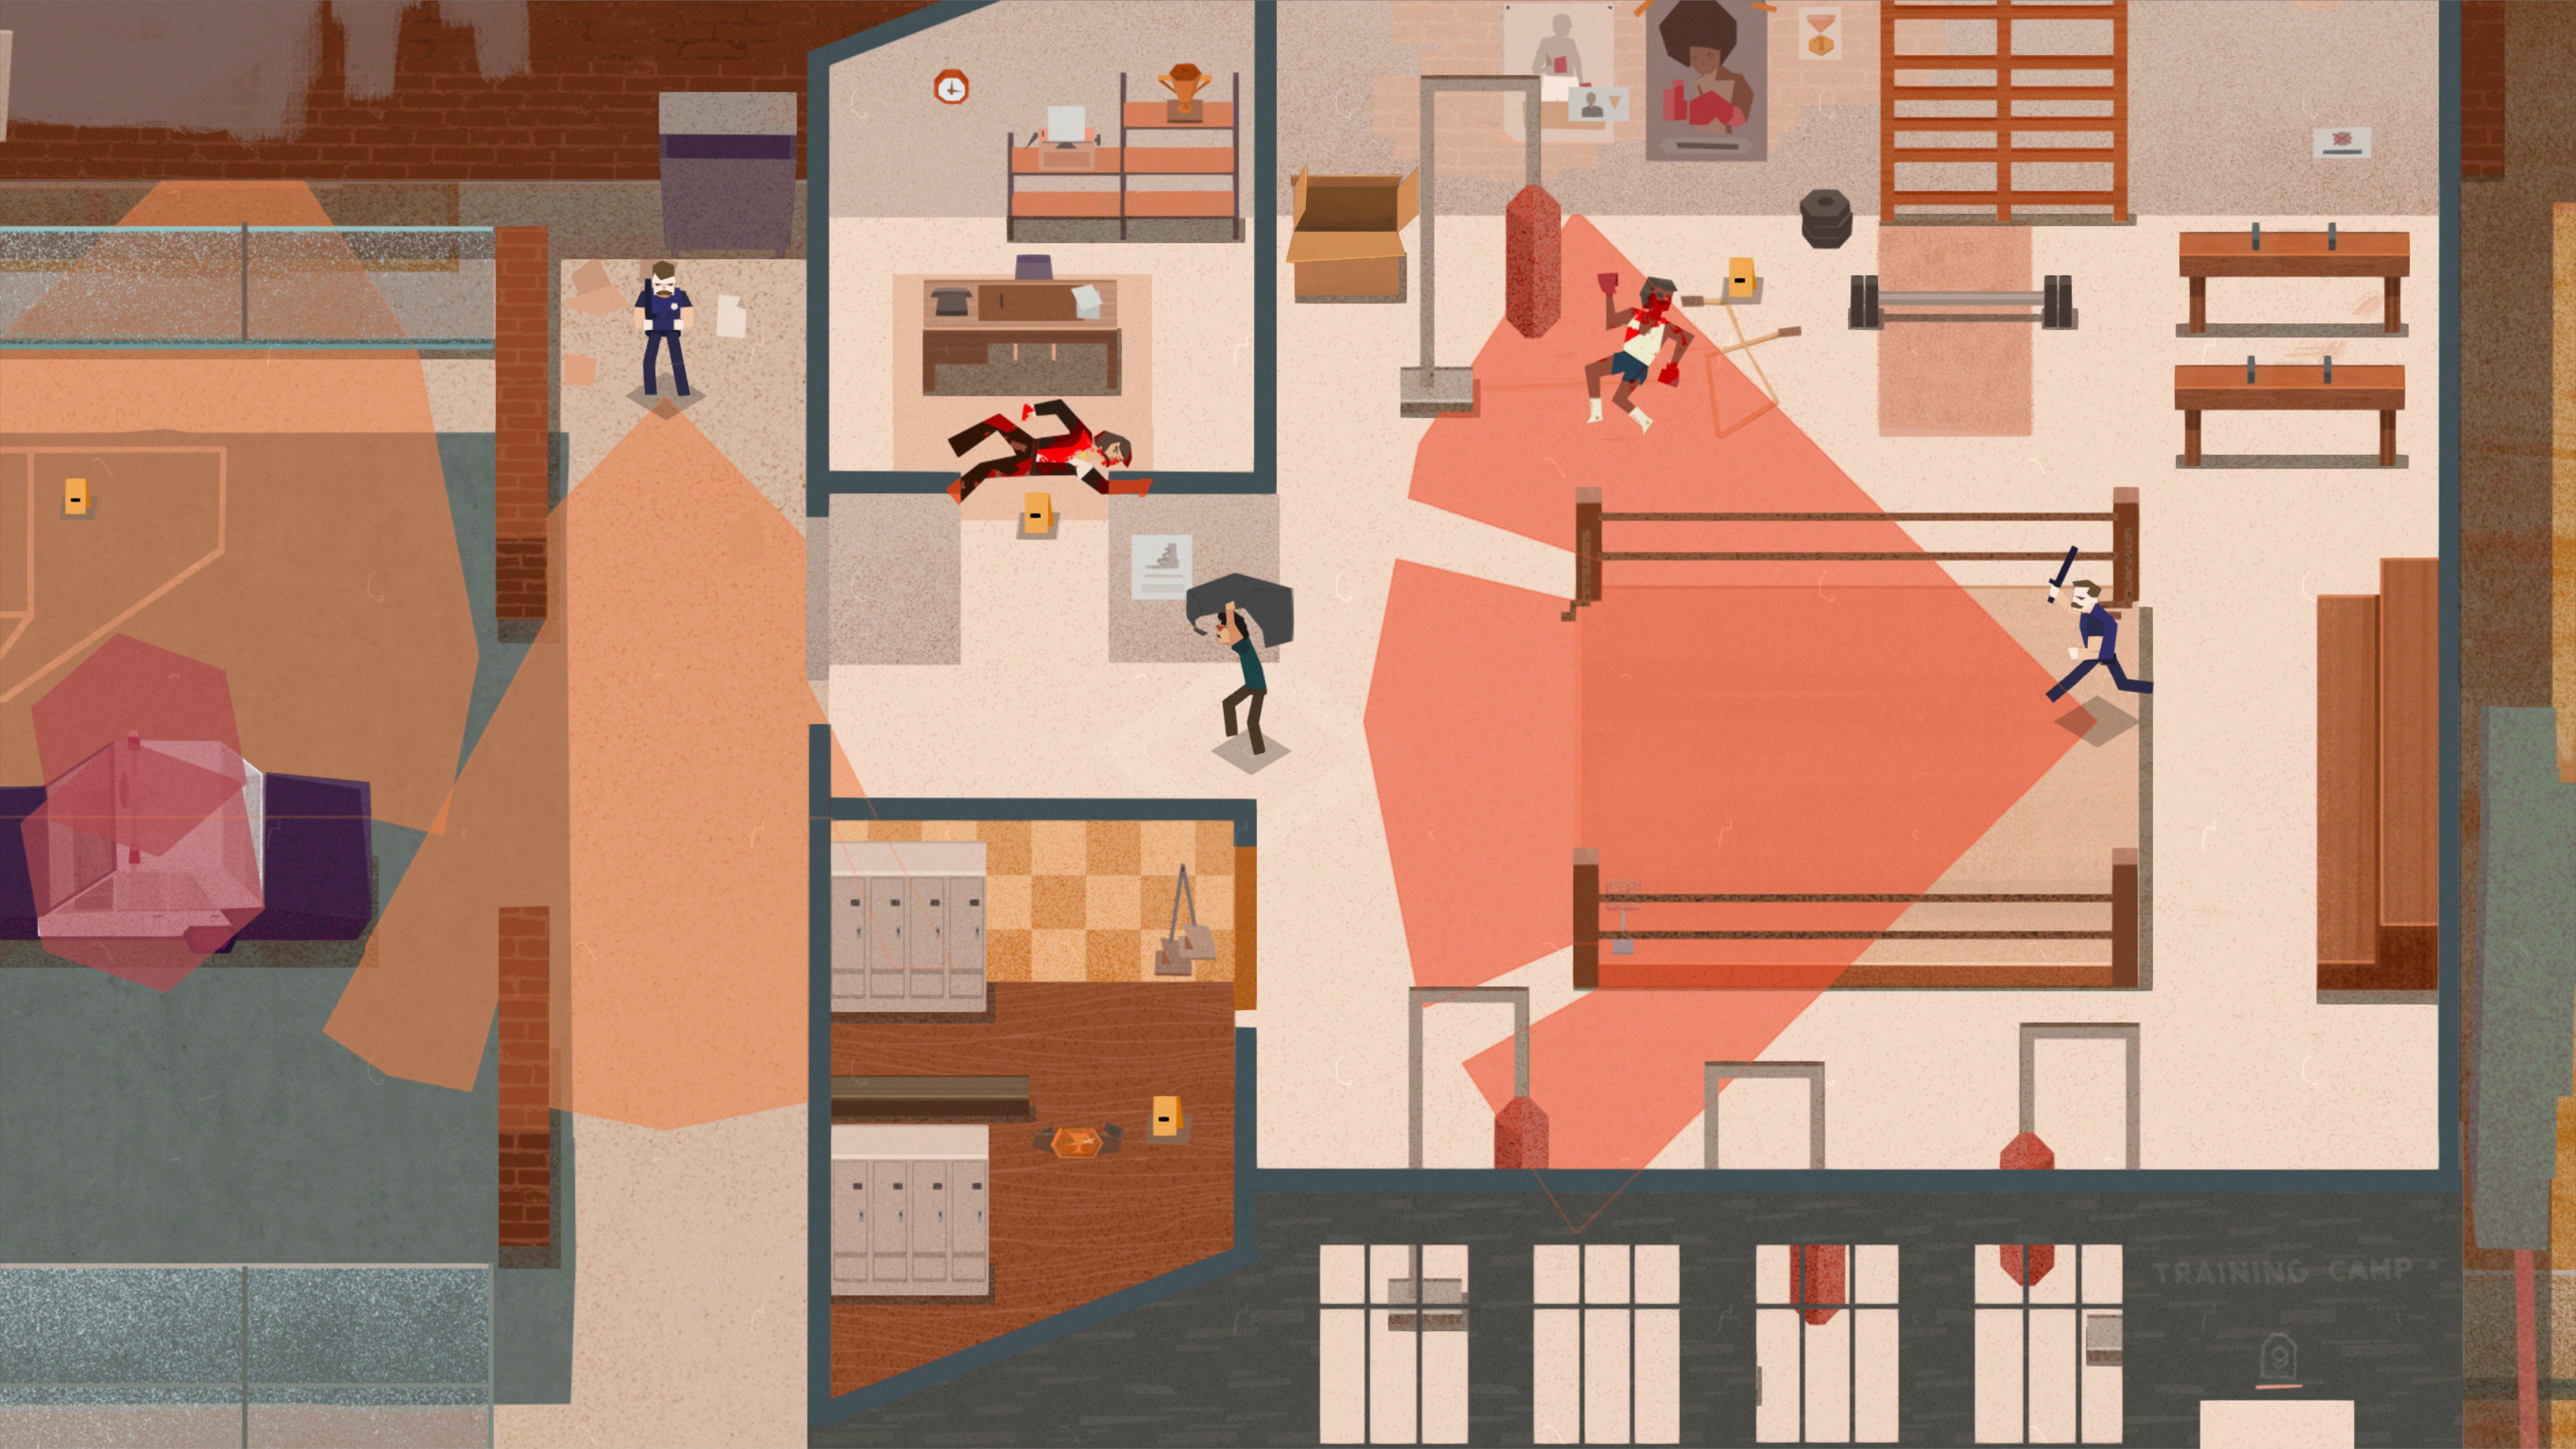 Fast-paced stealth game Serial Cleaner is headed to the Nintendo Switch